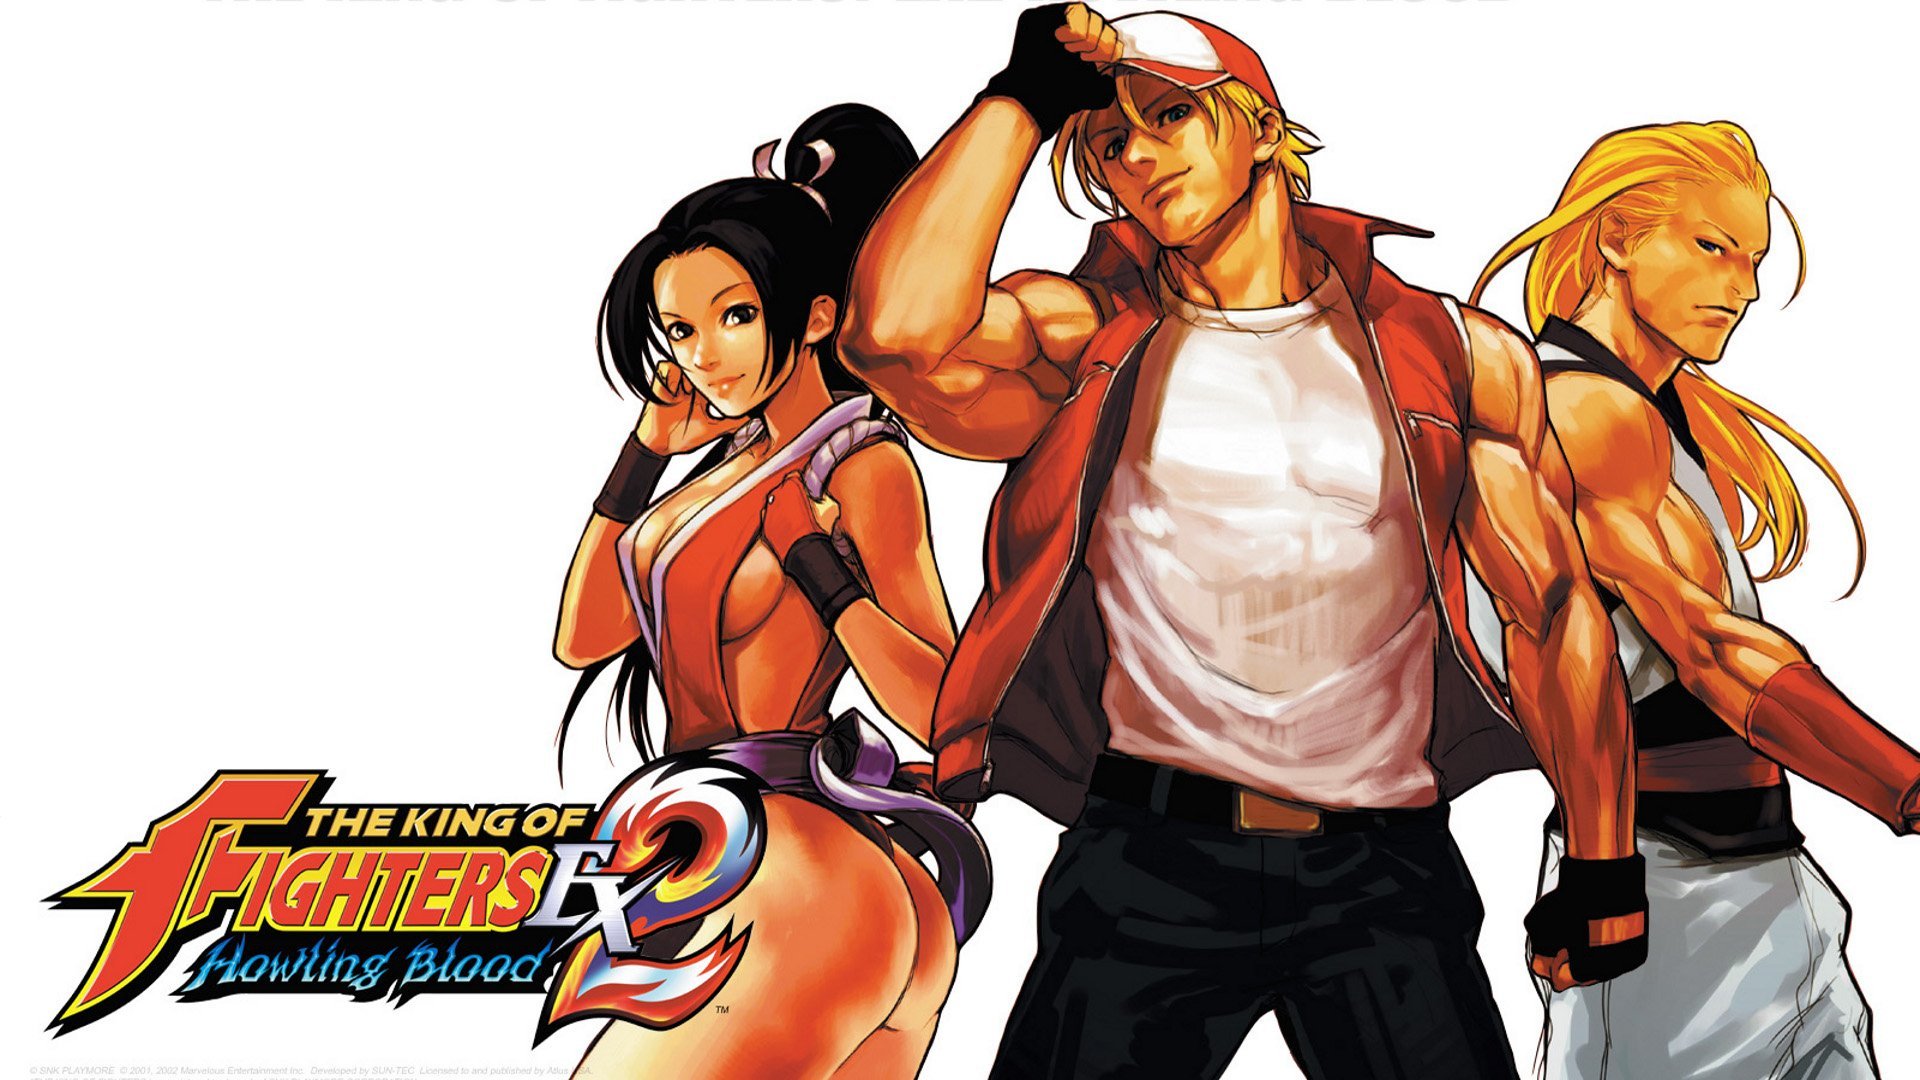 The King Of Fighters Hd Wallpapers Posted By Zoey Peltier